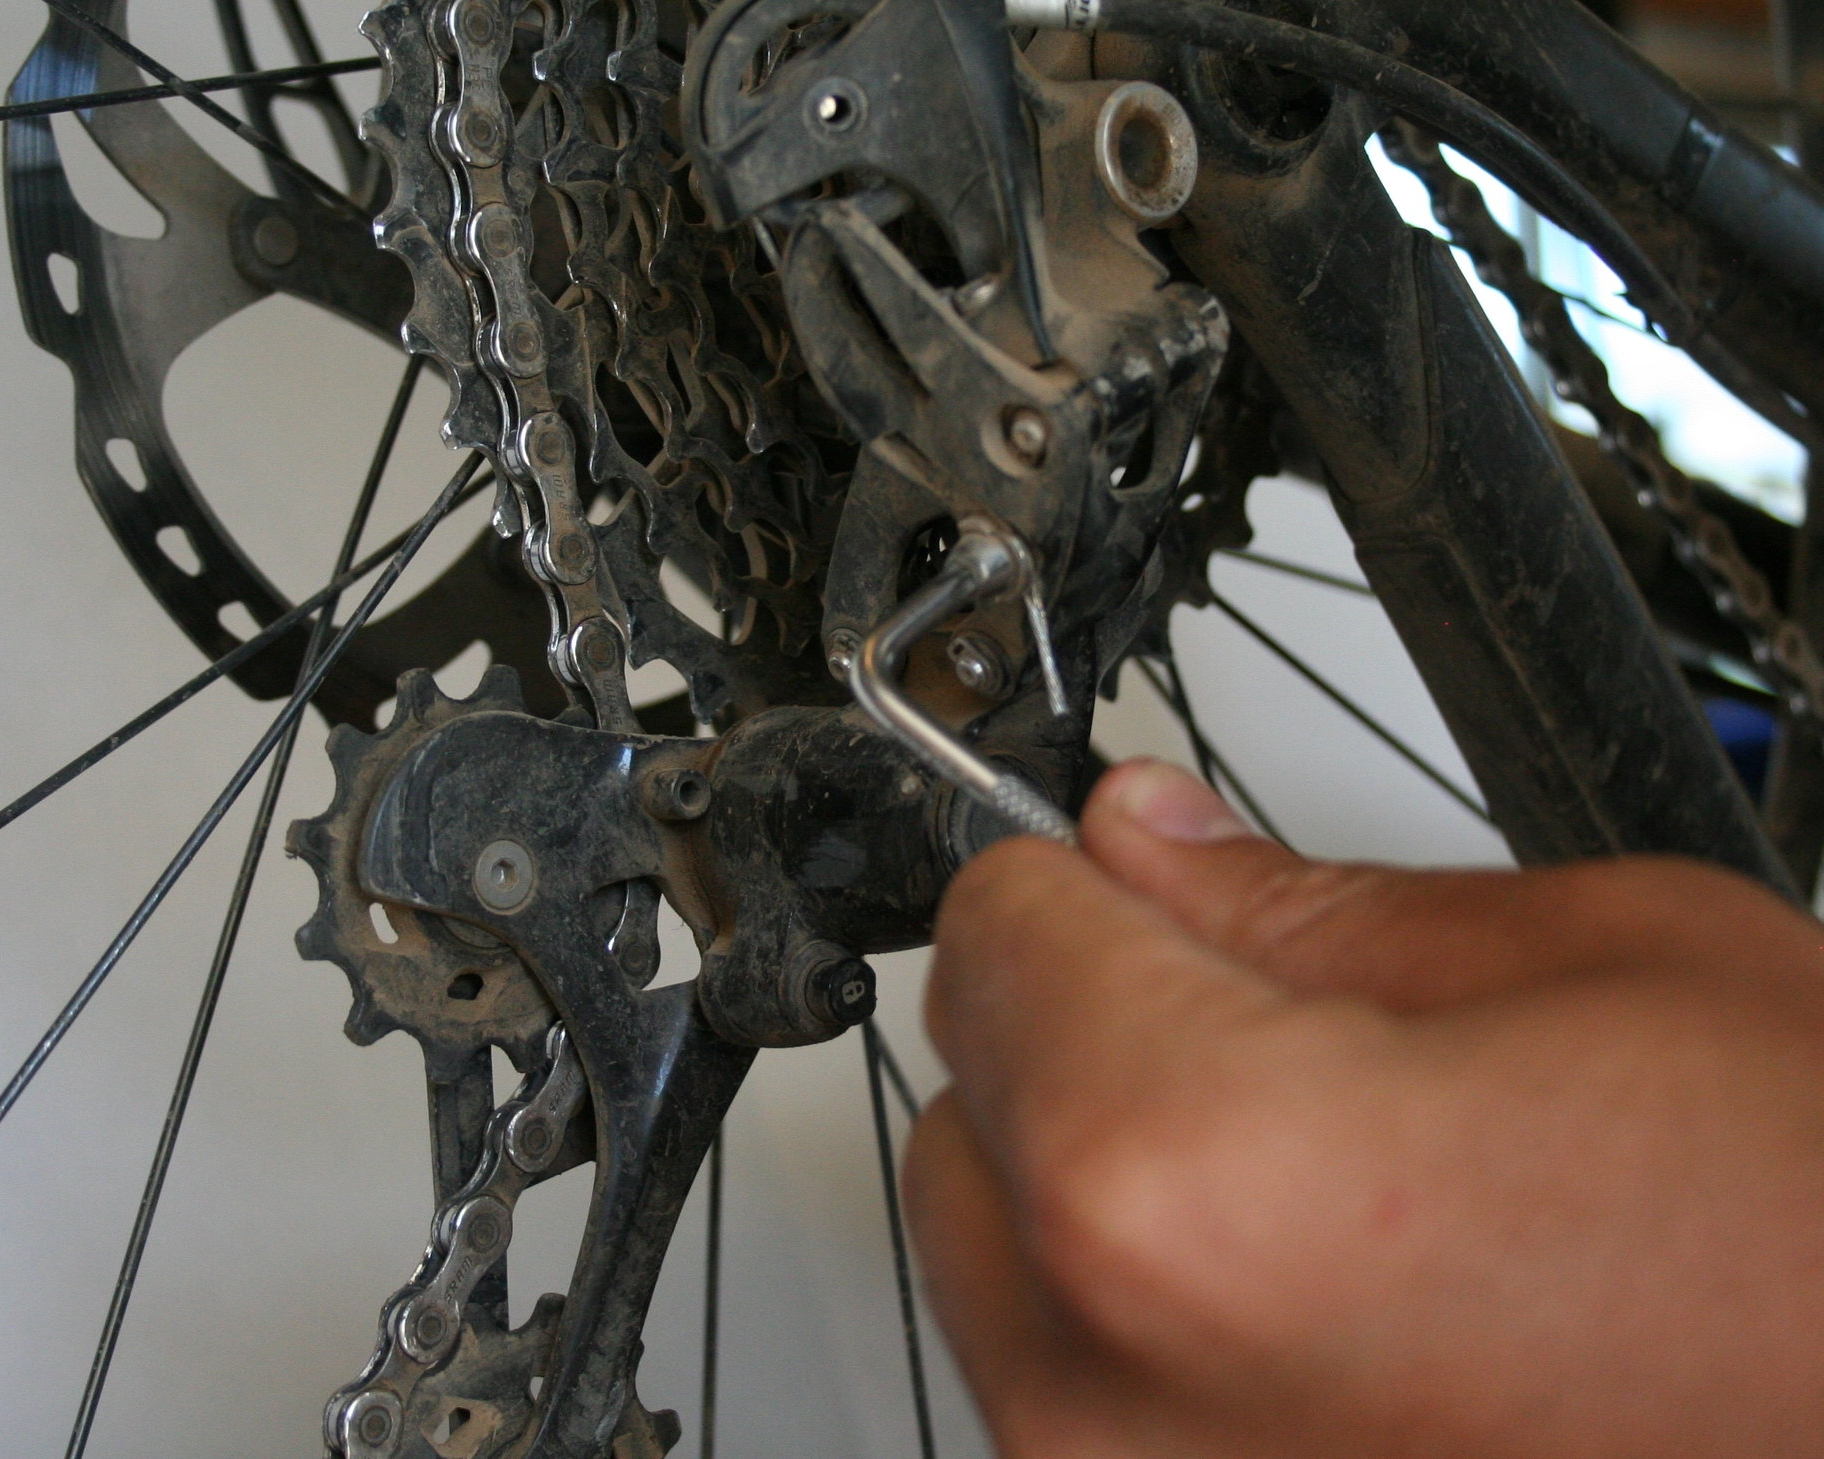 1. Remove derailleur cable - Loosen the bolt on the derailleur that holds the shift cable in place. If the end of the cable is frayed, you should consider replacing the cable as it will make the rest of the installation easier.